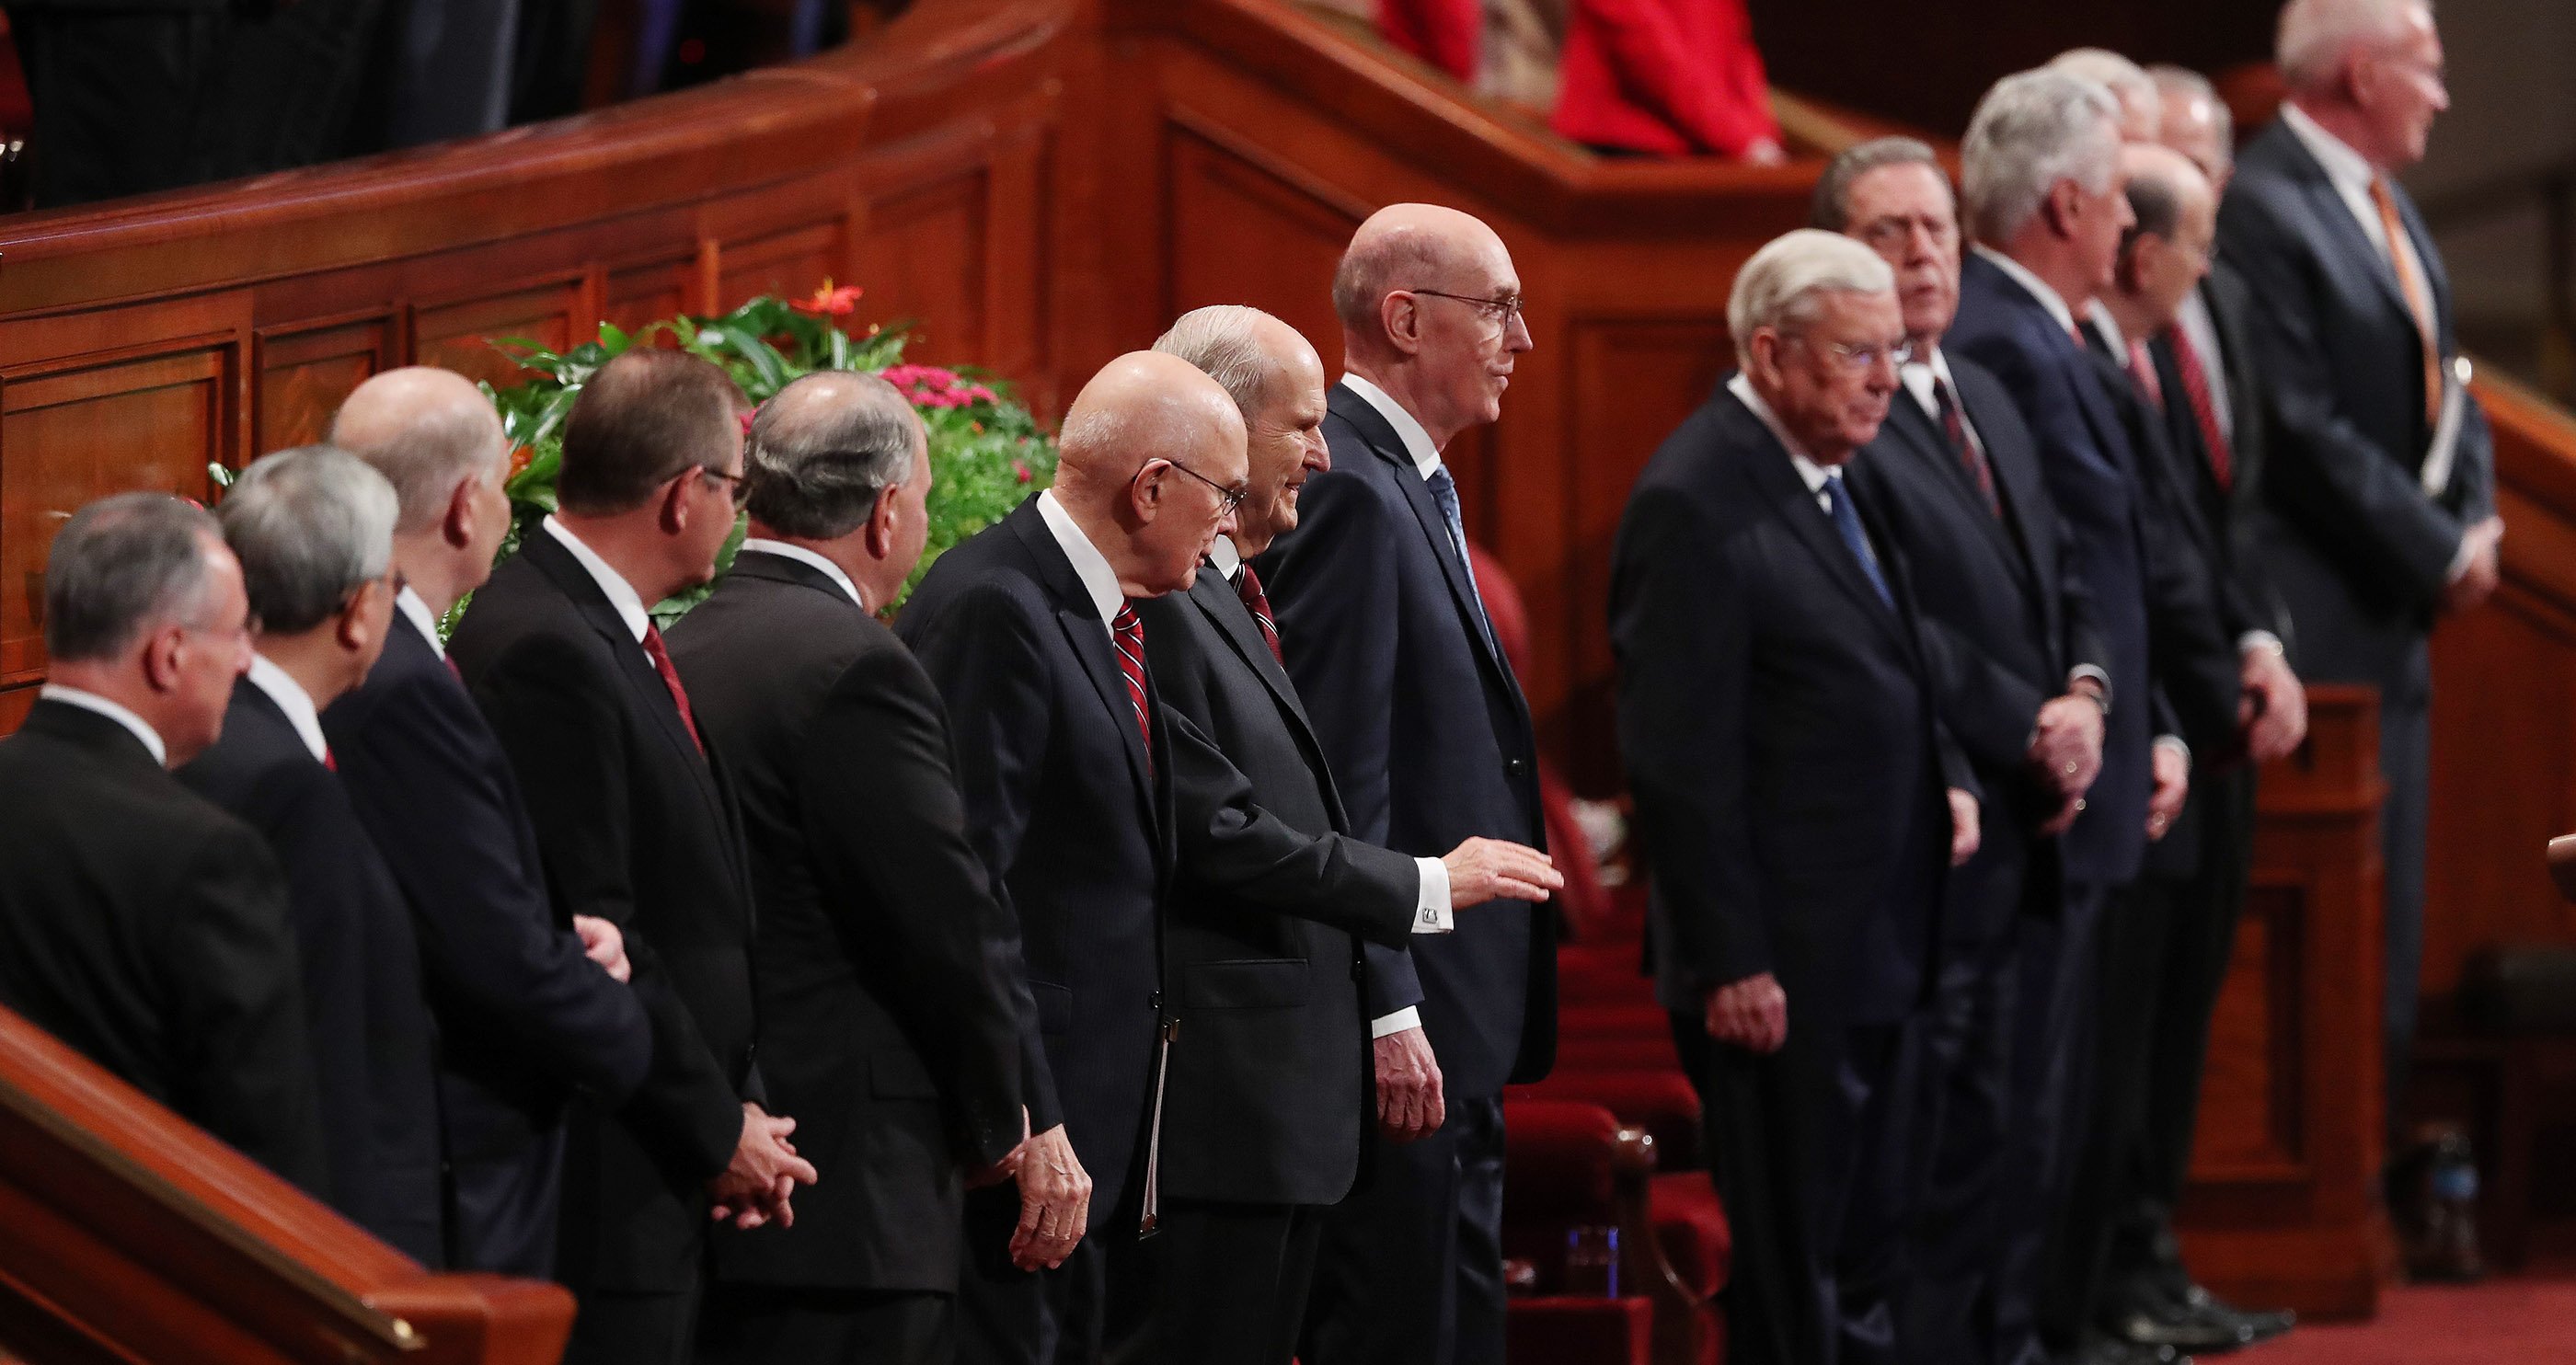 President Russell M. Nelson, center, the First Presidency and the Quorum of the Twelve Apostles stand as they enter the Conference Center in Salt Lake City for the Saturday afternoon session of the 188th Semiannual General Conference of The Church of Jesus Christ of Latter-day Saints in Salt Lake City on Saturday, Oct. 6, 2018.